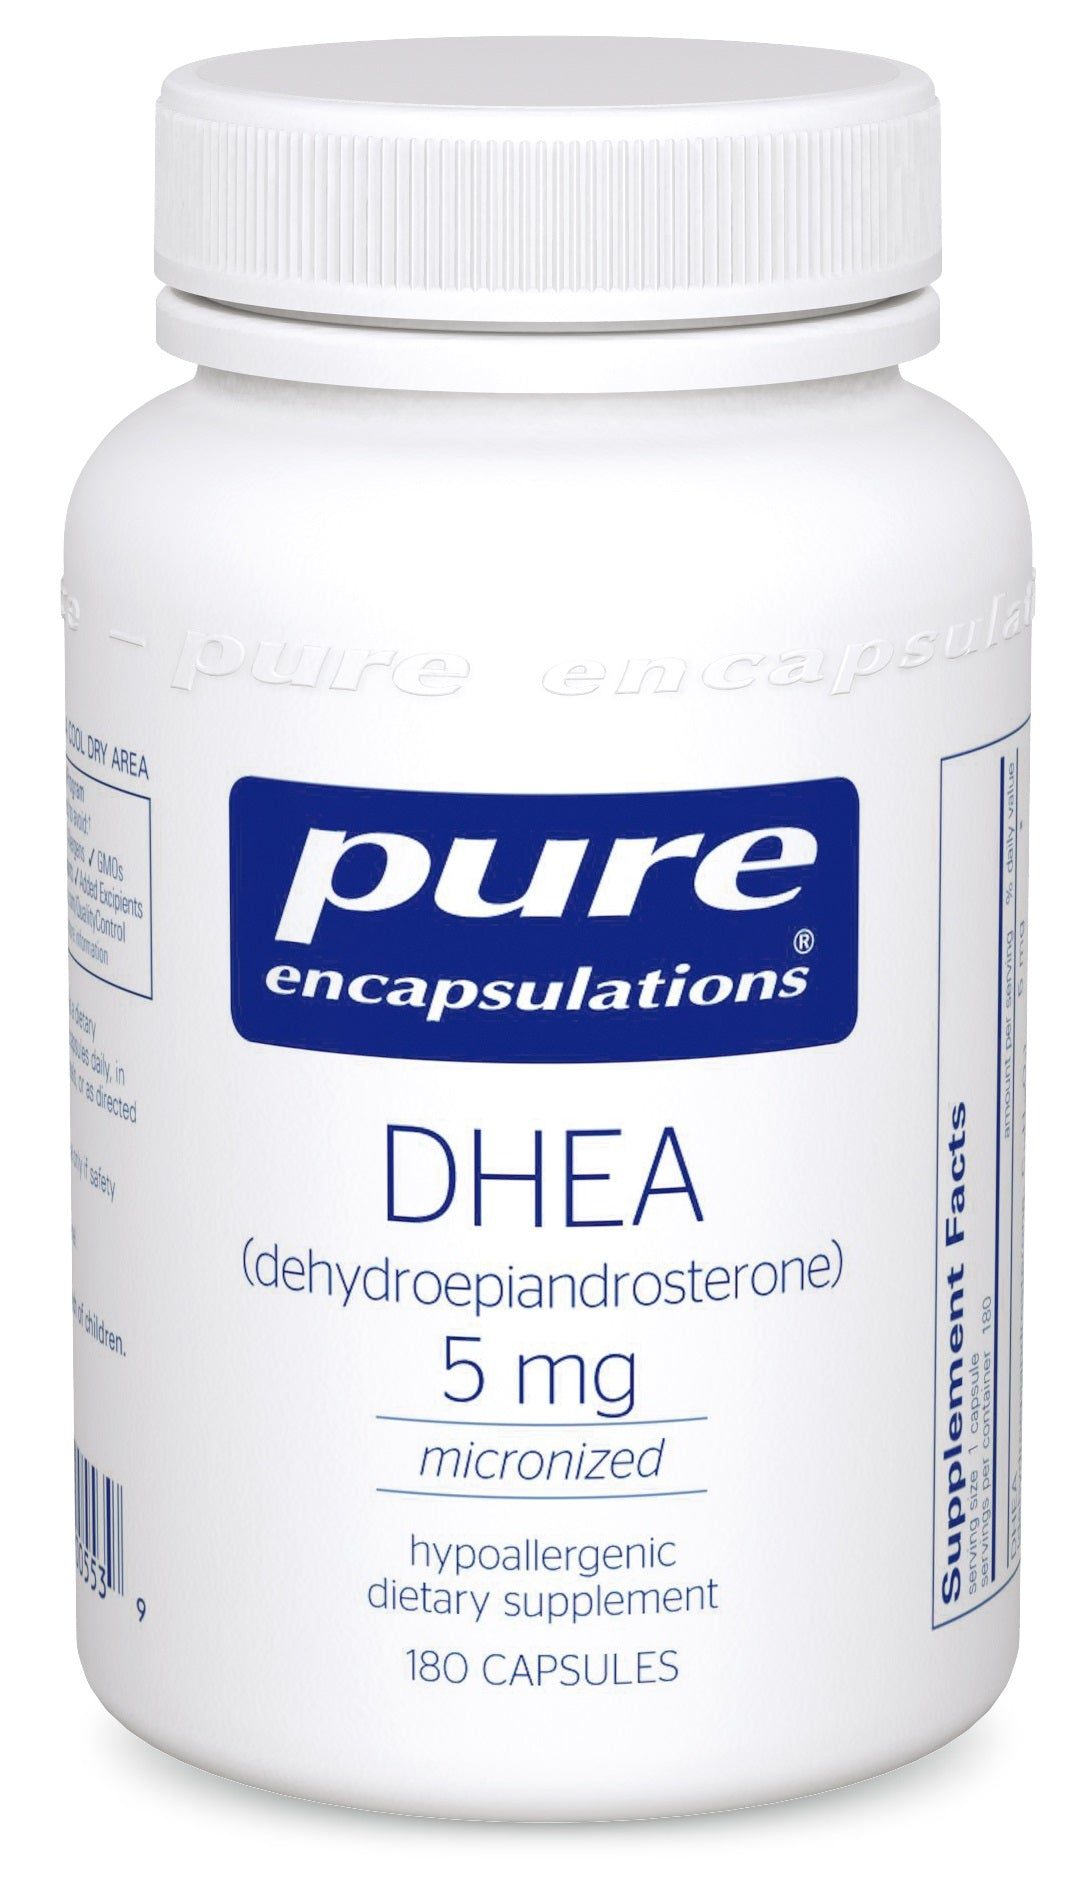 A bottle of Pure DHEA 5 mg